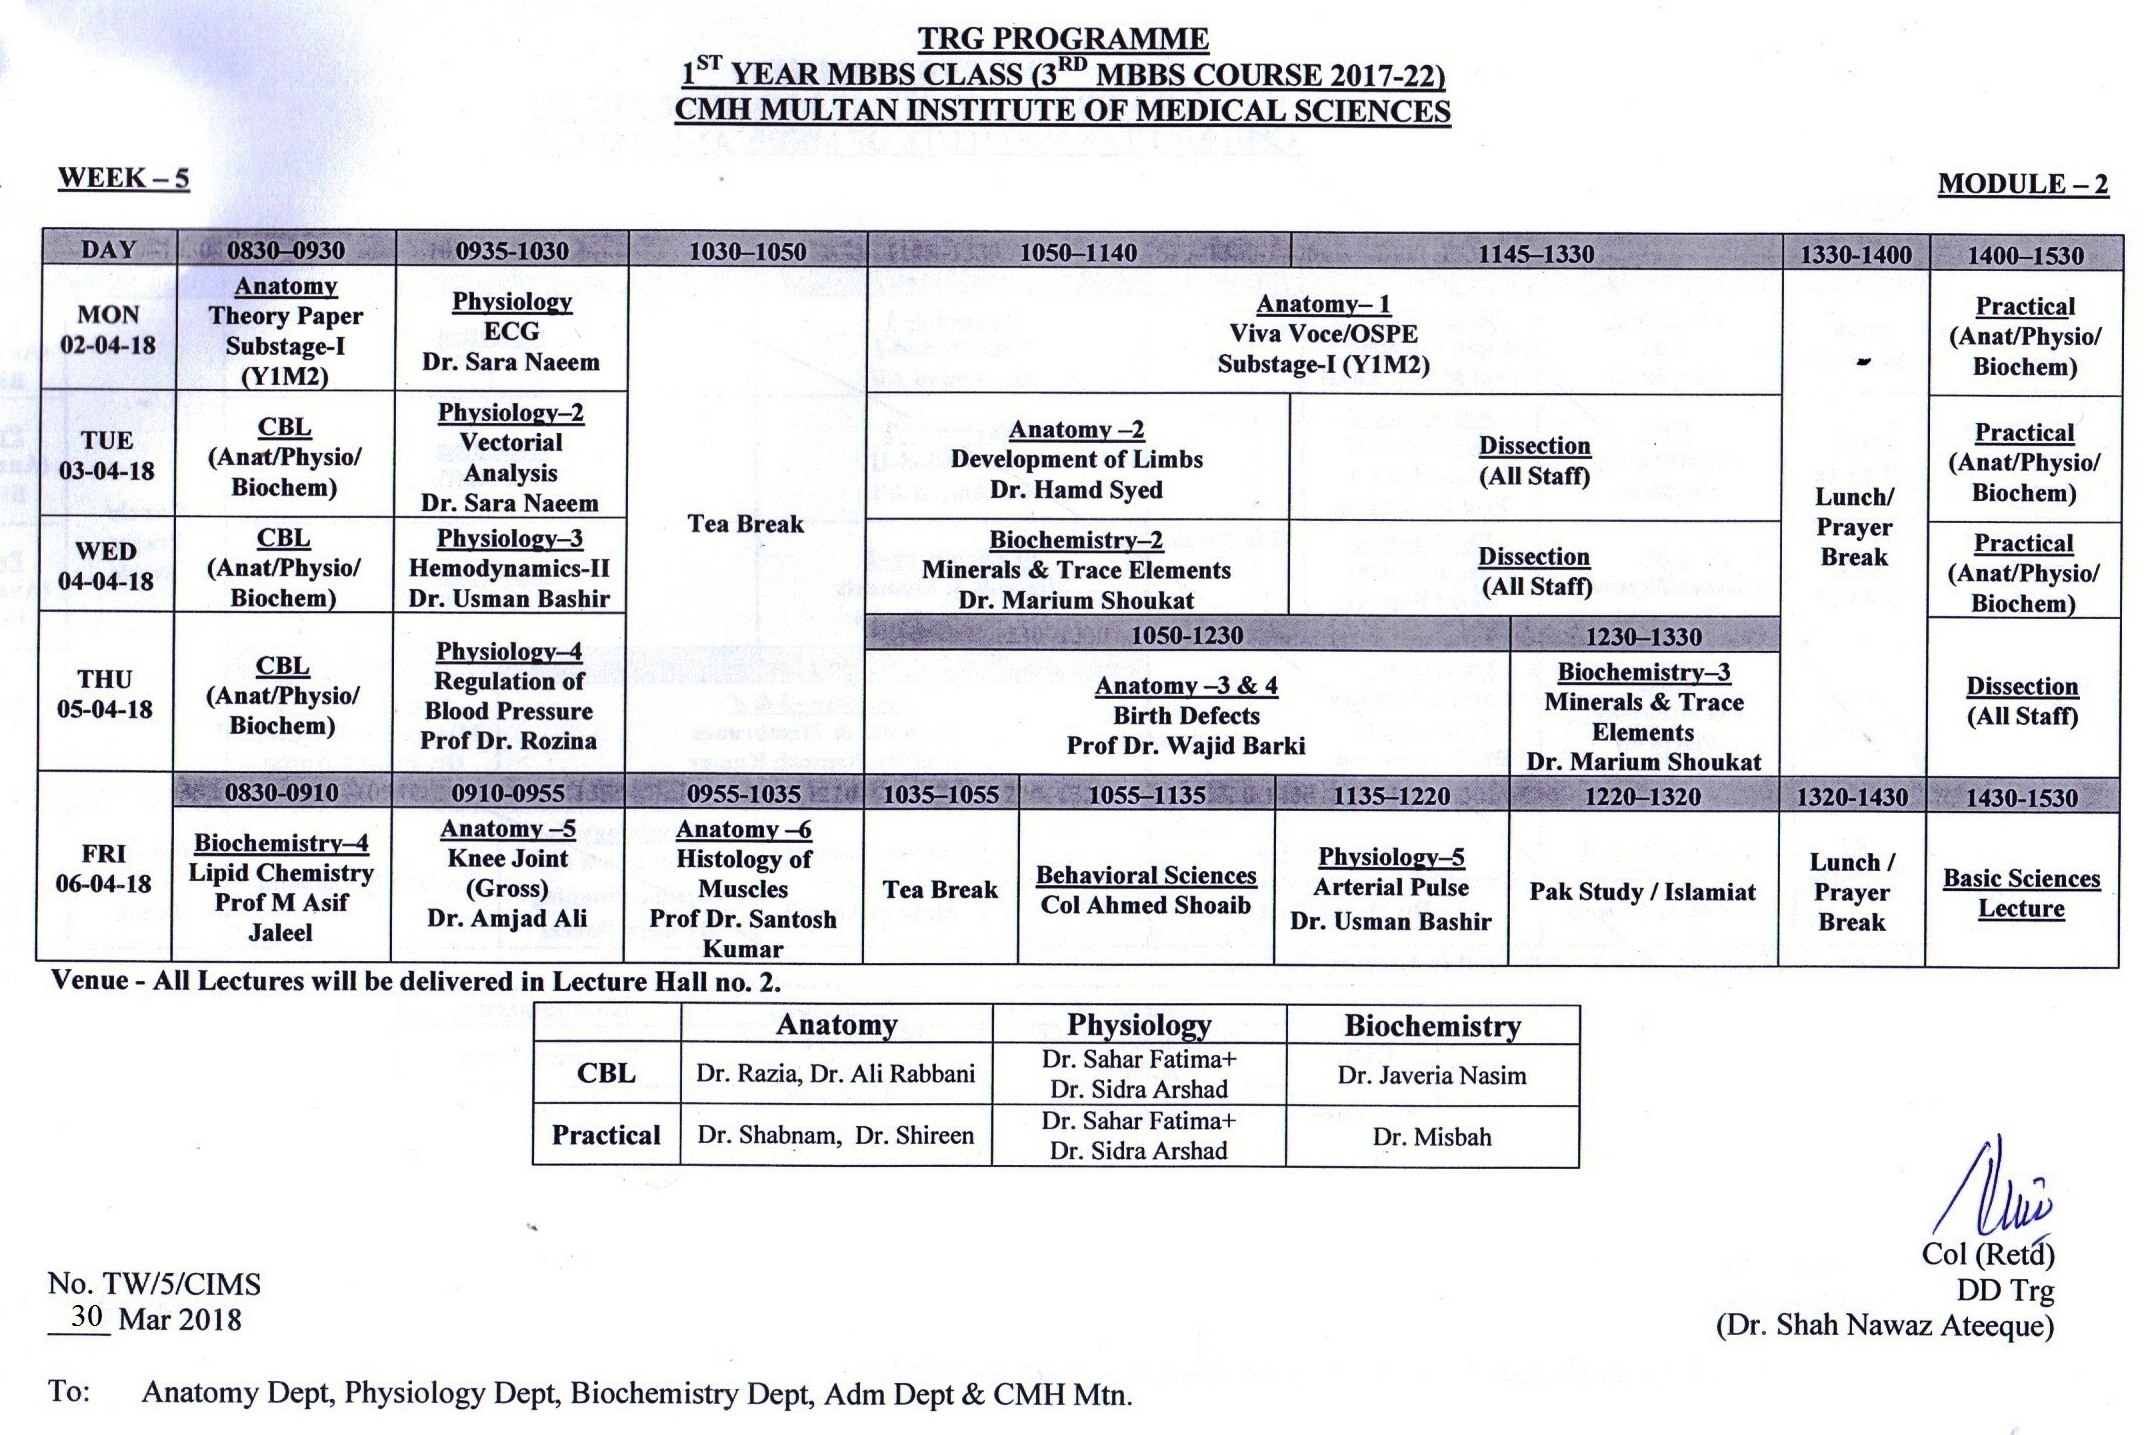 1st Year MBBS Weekly Training Program 2017 – 18 | CIMS